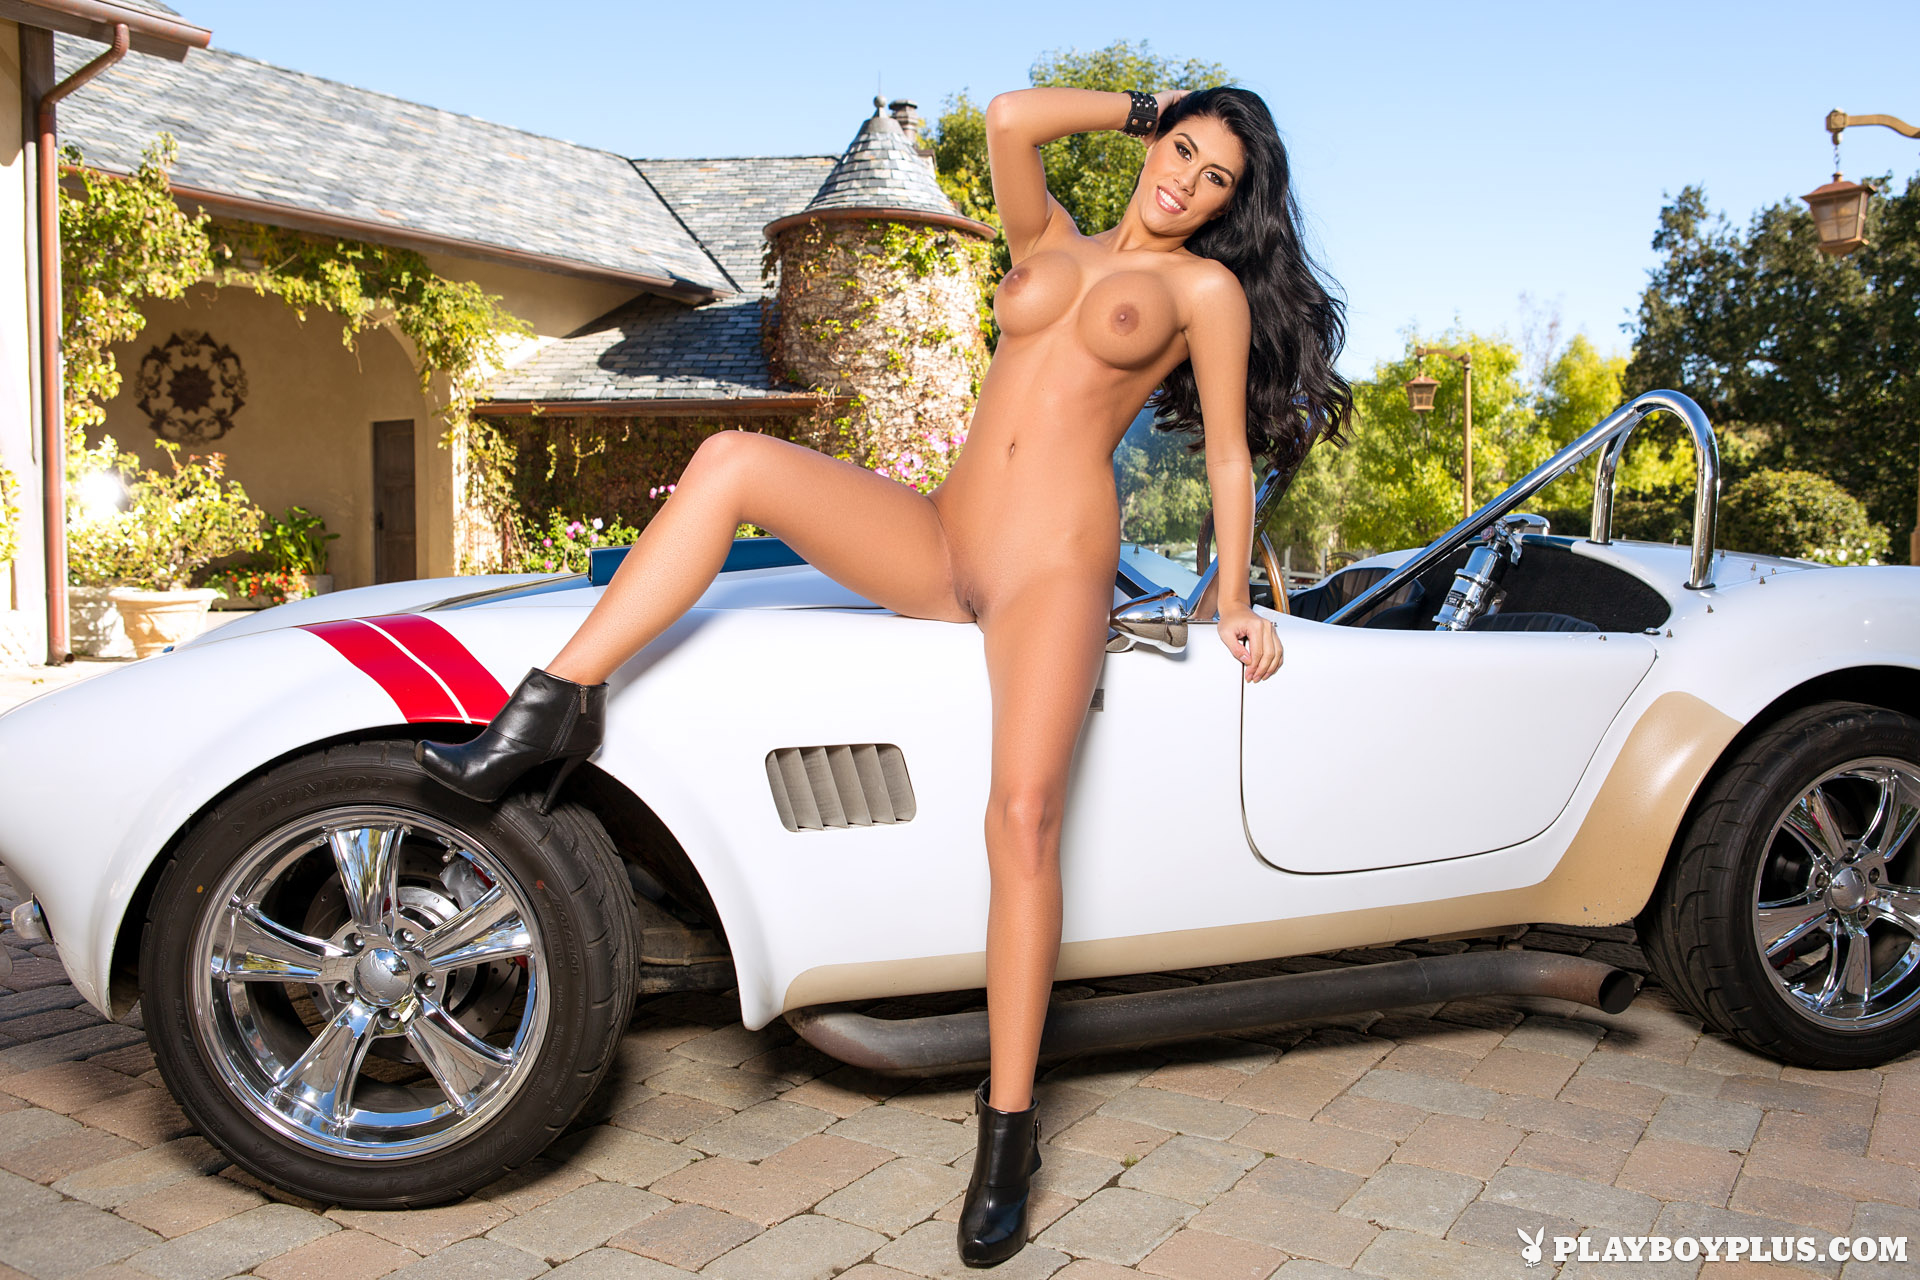 sports-cars-and-naked-chicks-wonder-woman